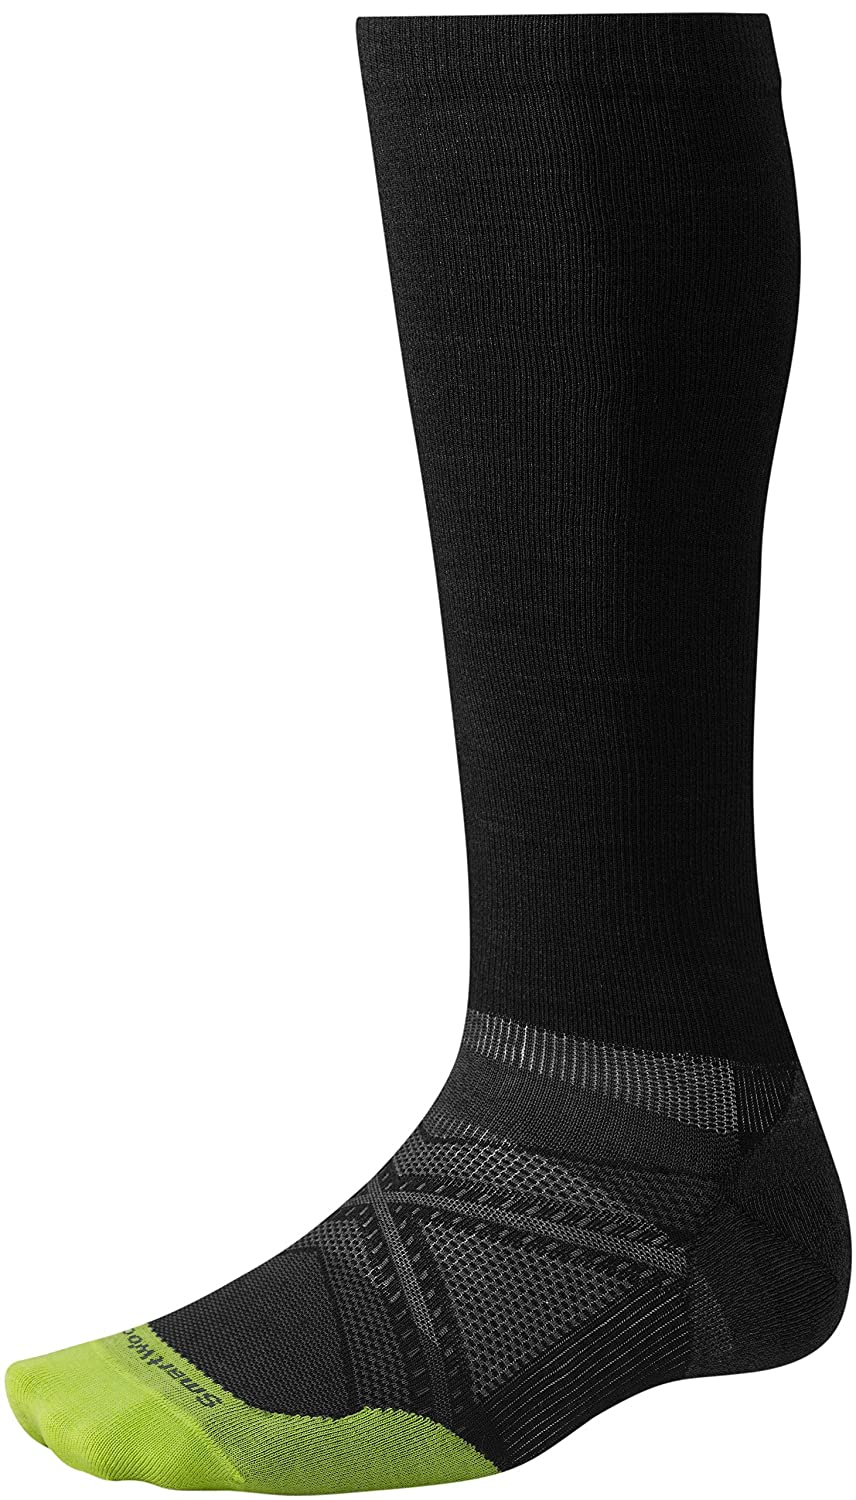 Price Reduction 100% Quality Smartwool Phd Run Graduated Compression Ultra Light Sock Black 6G1O